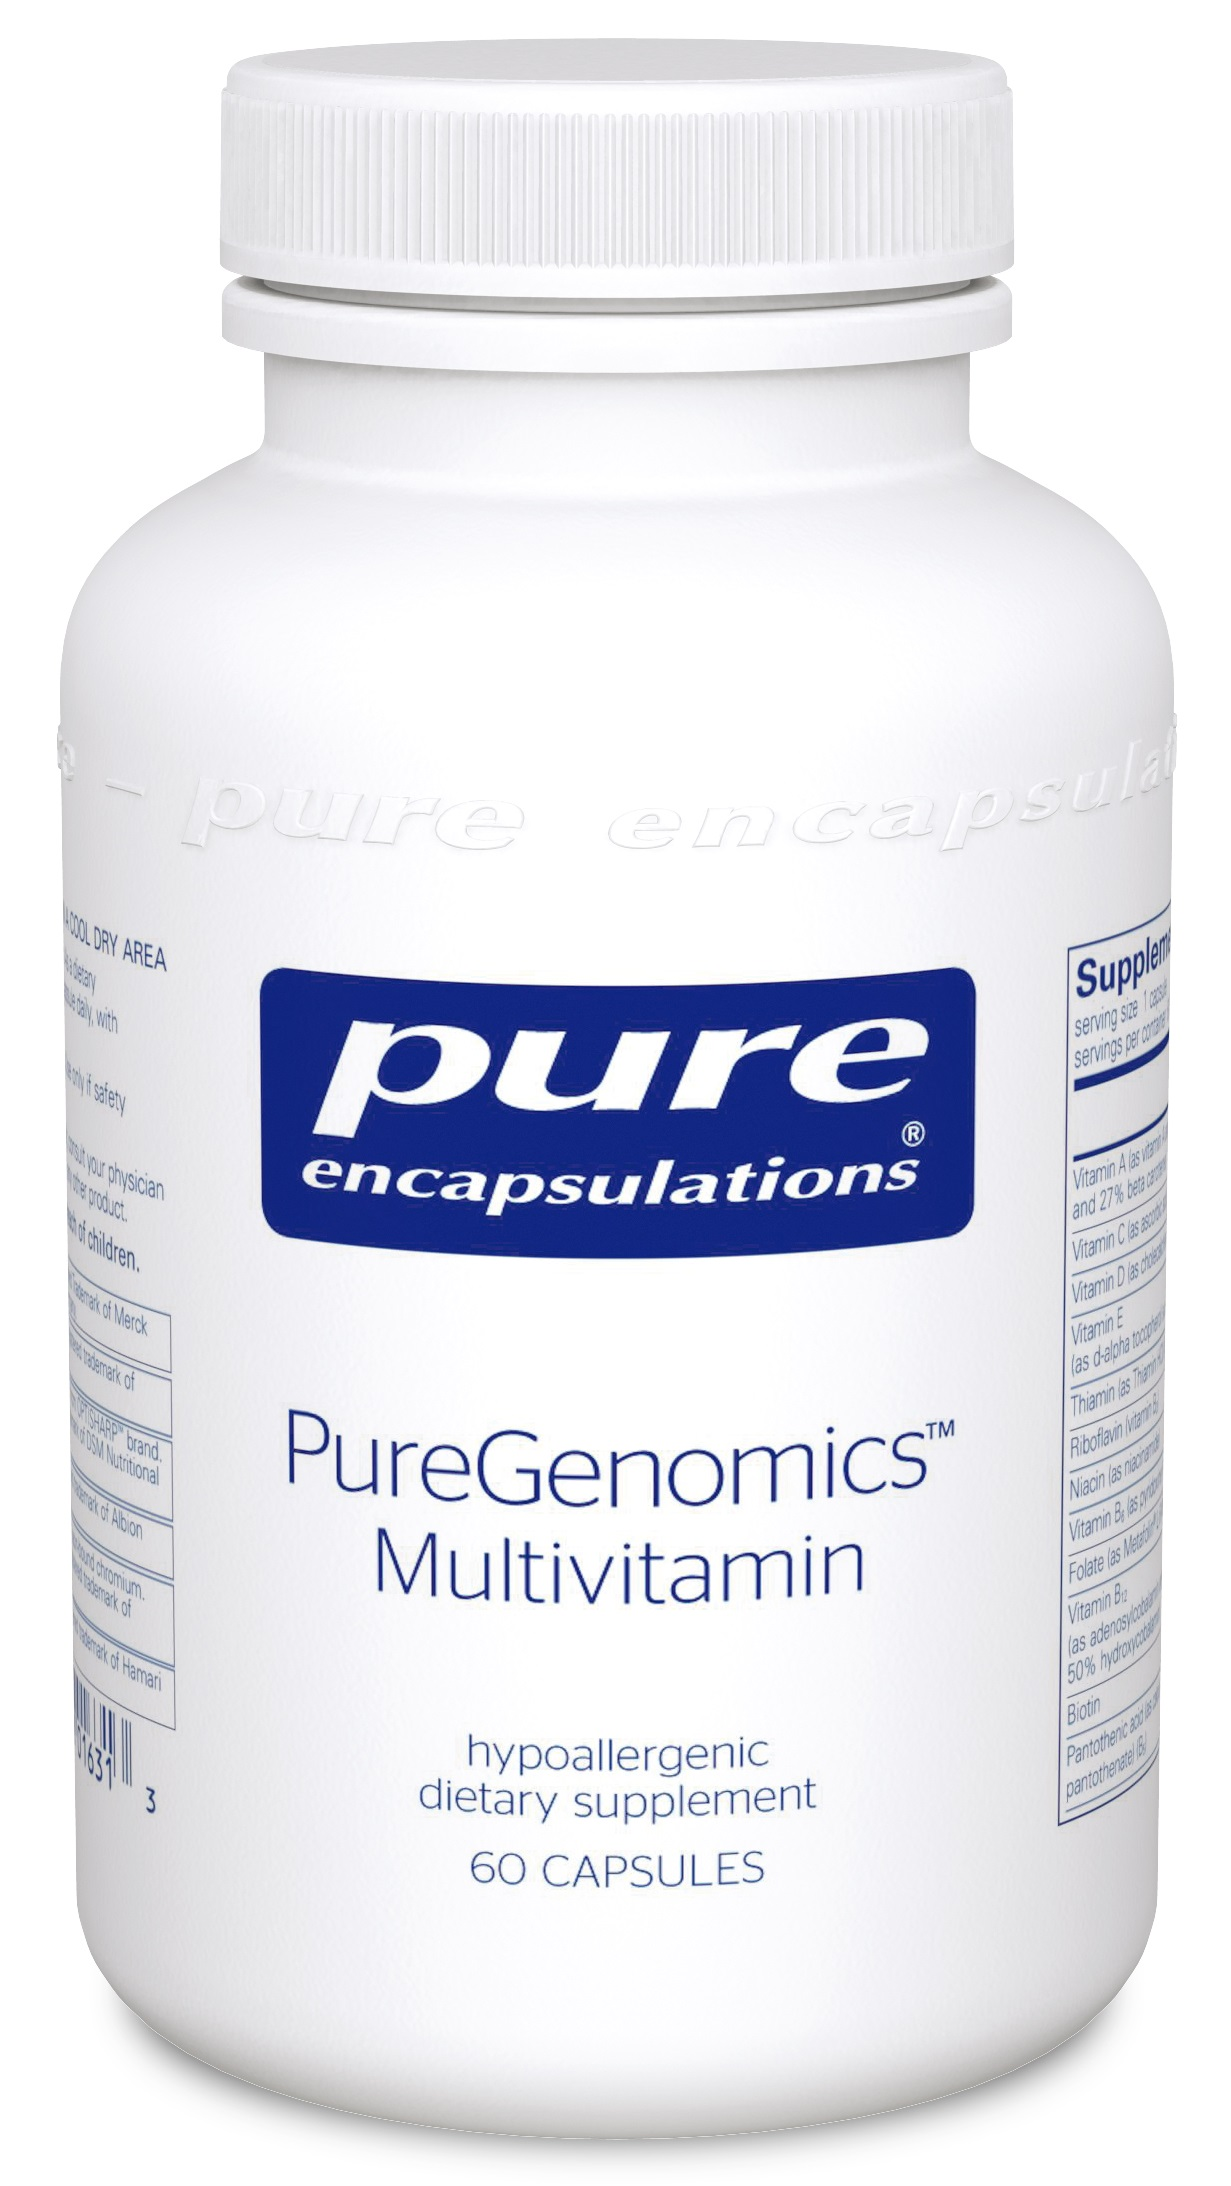 Pure Encapsulations PureGenomics® Multivitamin 60's - IMPROVED